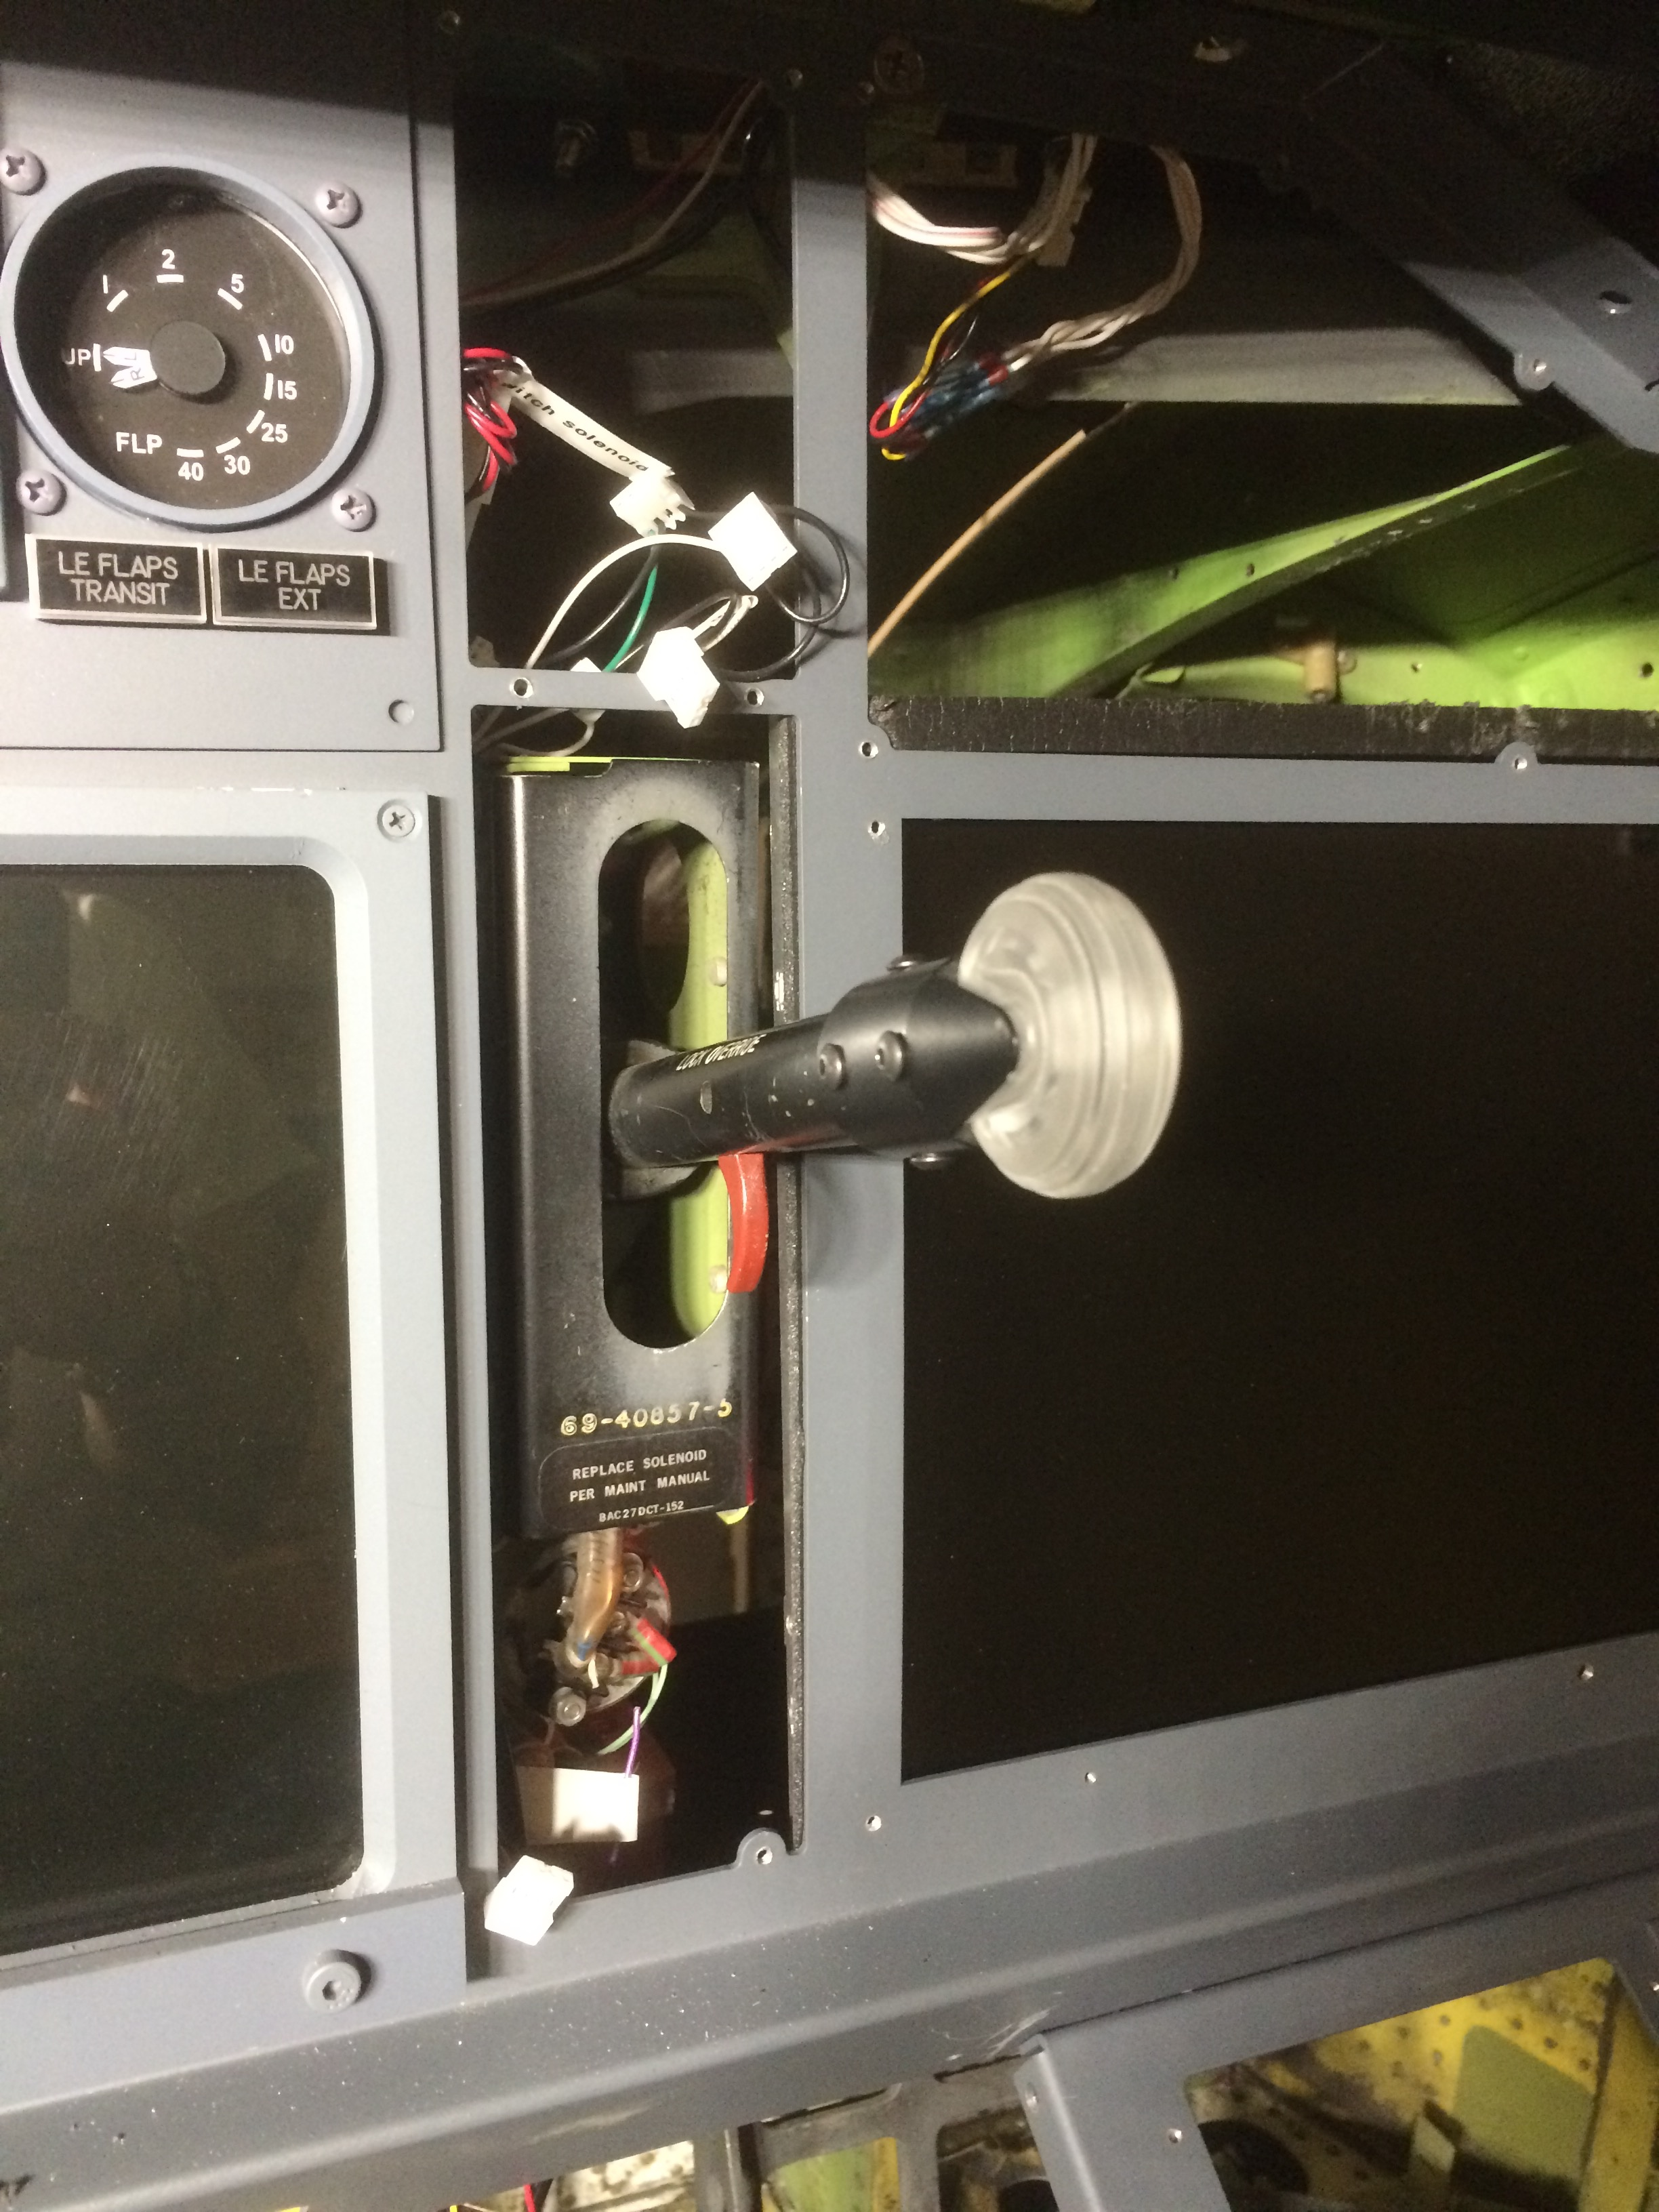 fly737ng com the 737ng experience blog of a crazy simulator builder boeing landing gear lever after installation of fds ng style smaller wheel knob